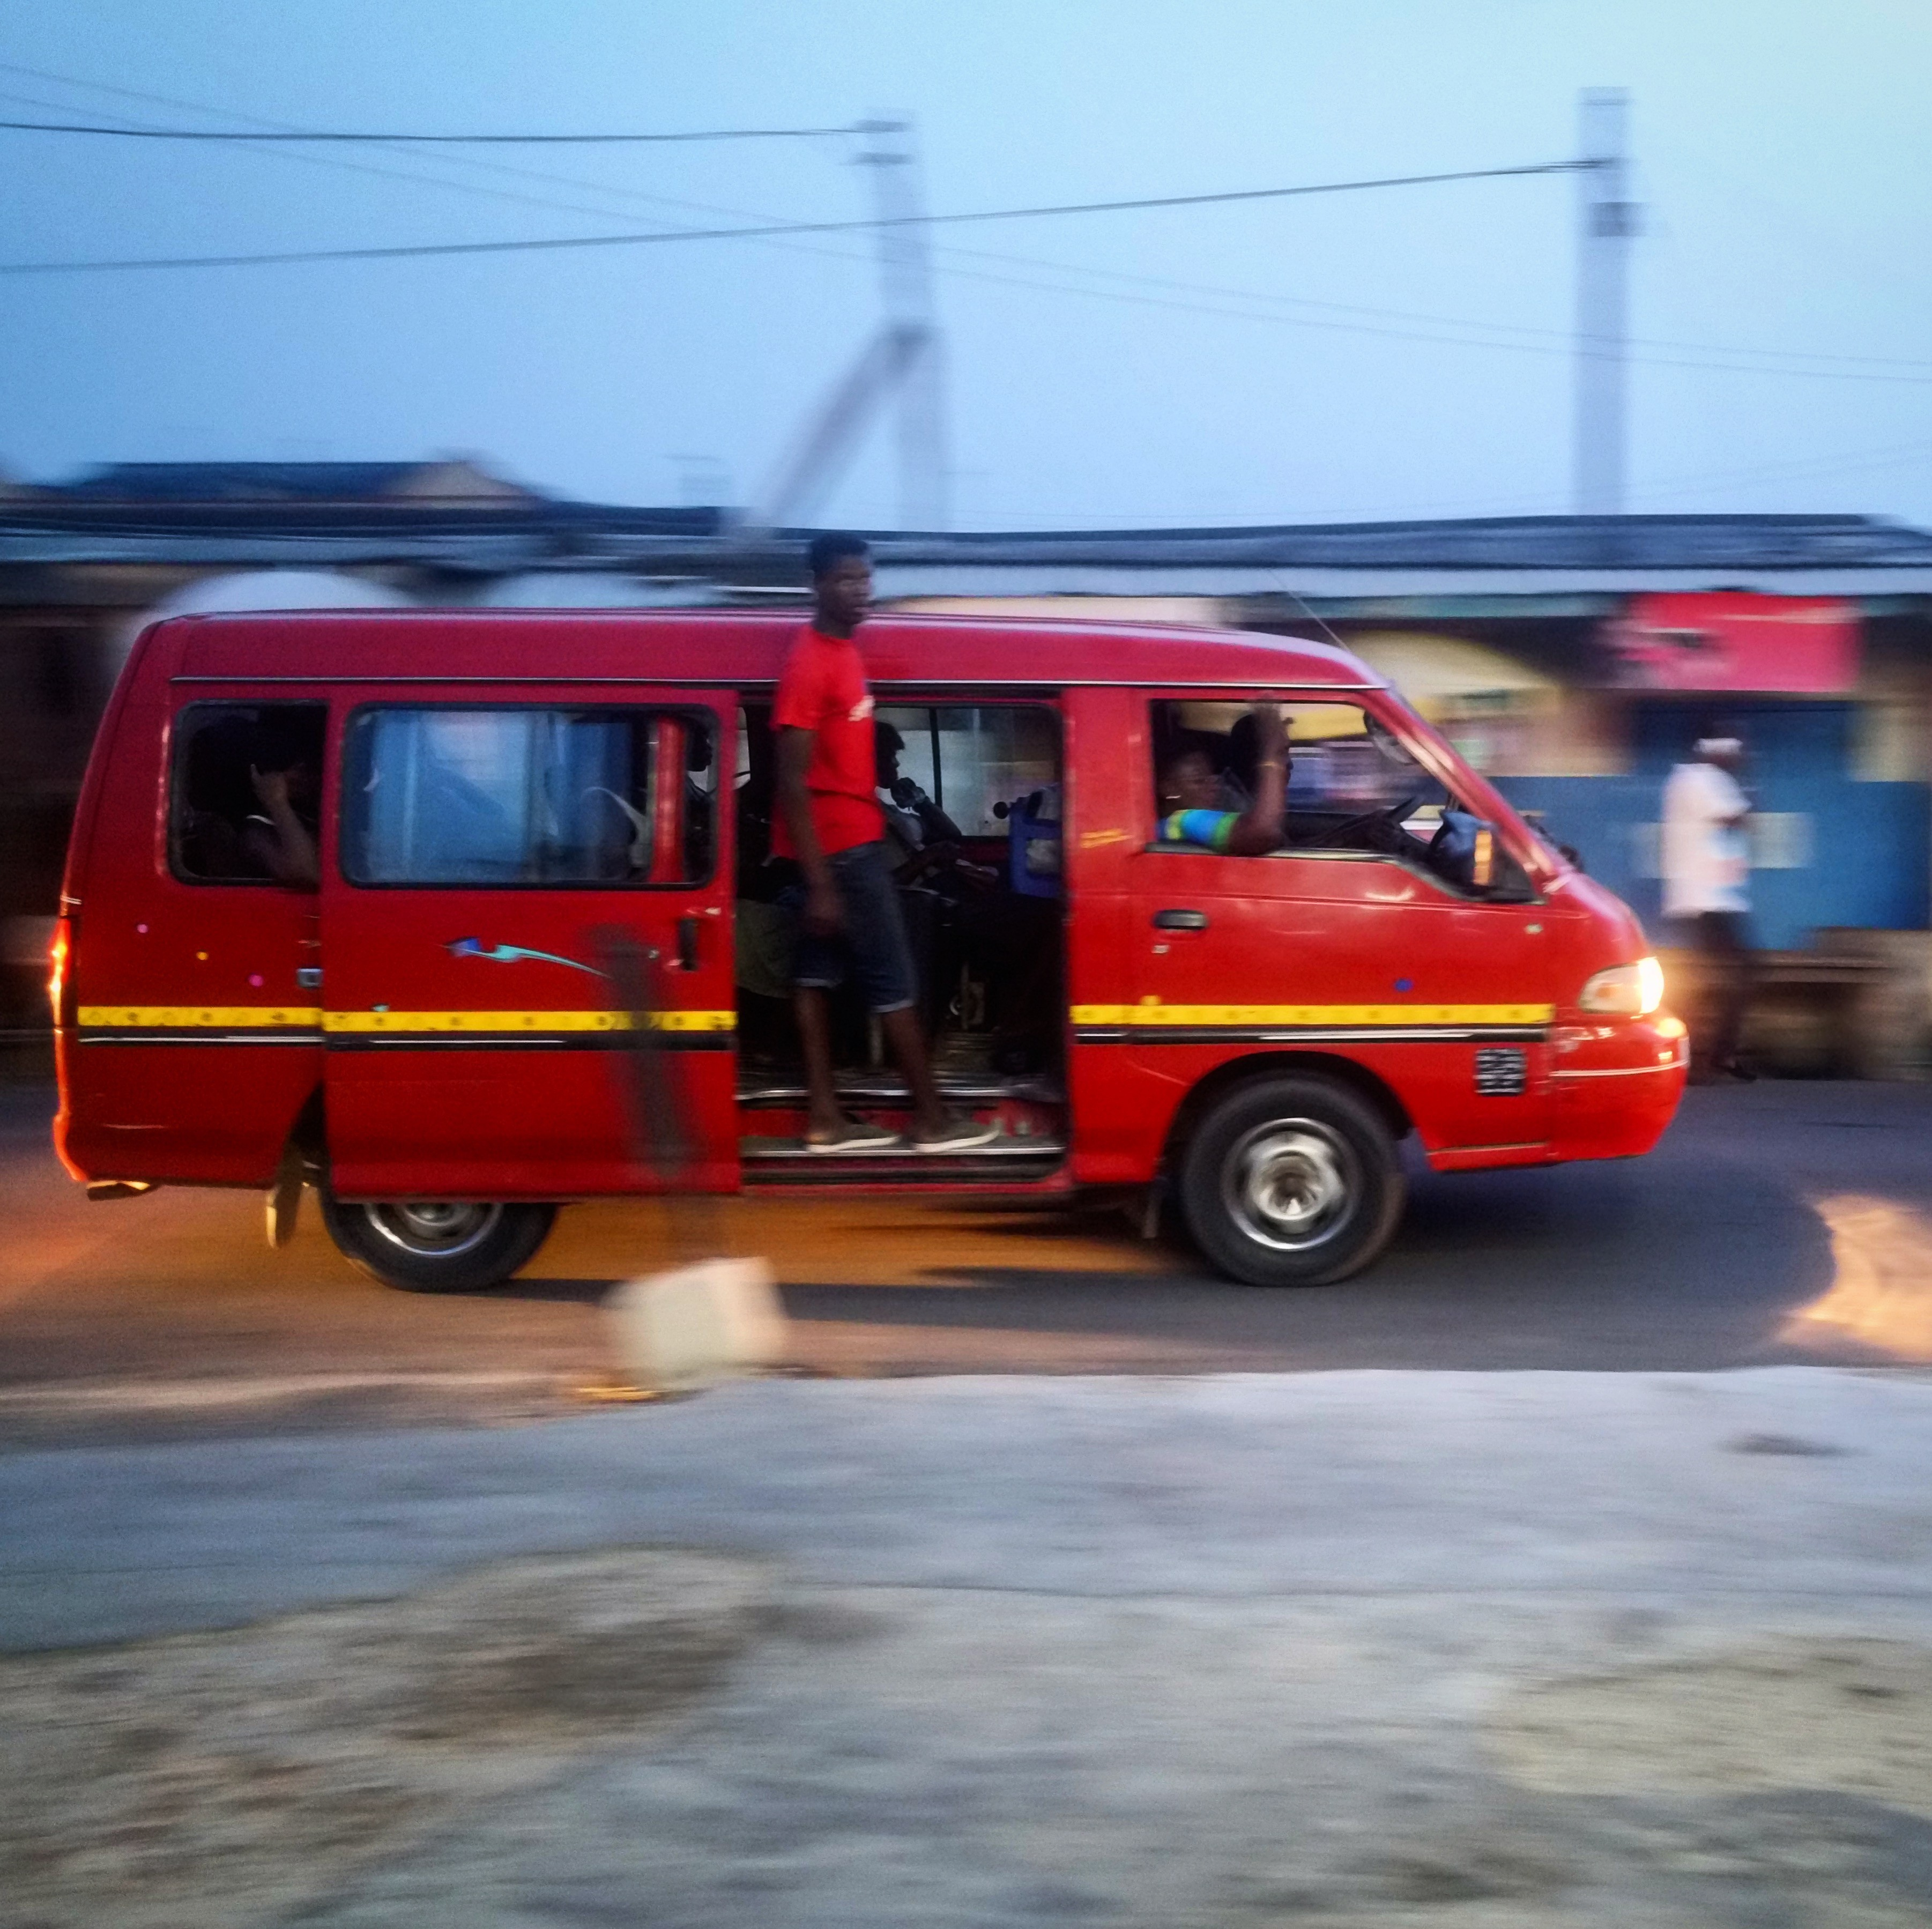 A red van, with the side door open and a young man standing and hanging off the vehicle, is moving from left to right.